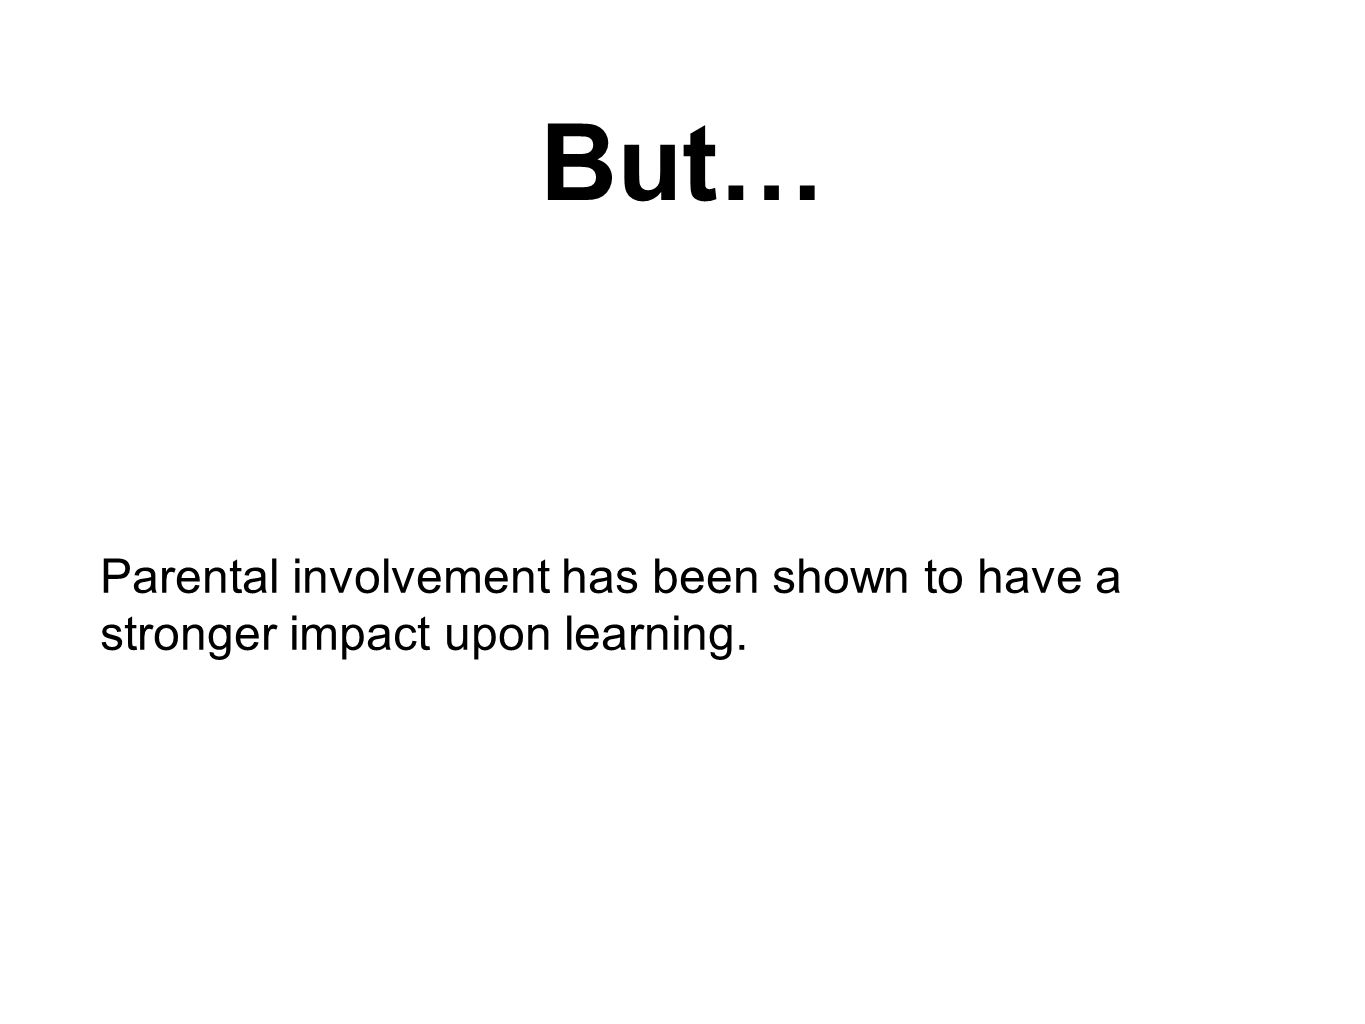 But… Parental involvement has been shown to have a stronger impact upon learning.